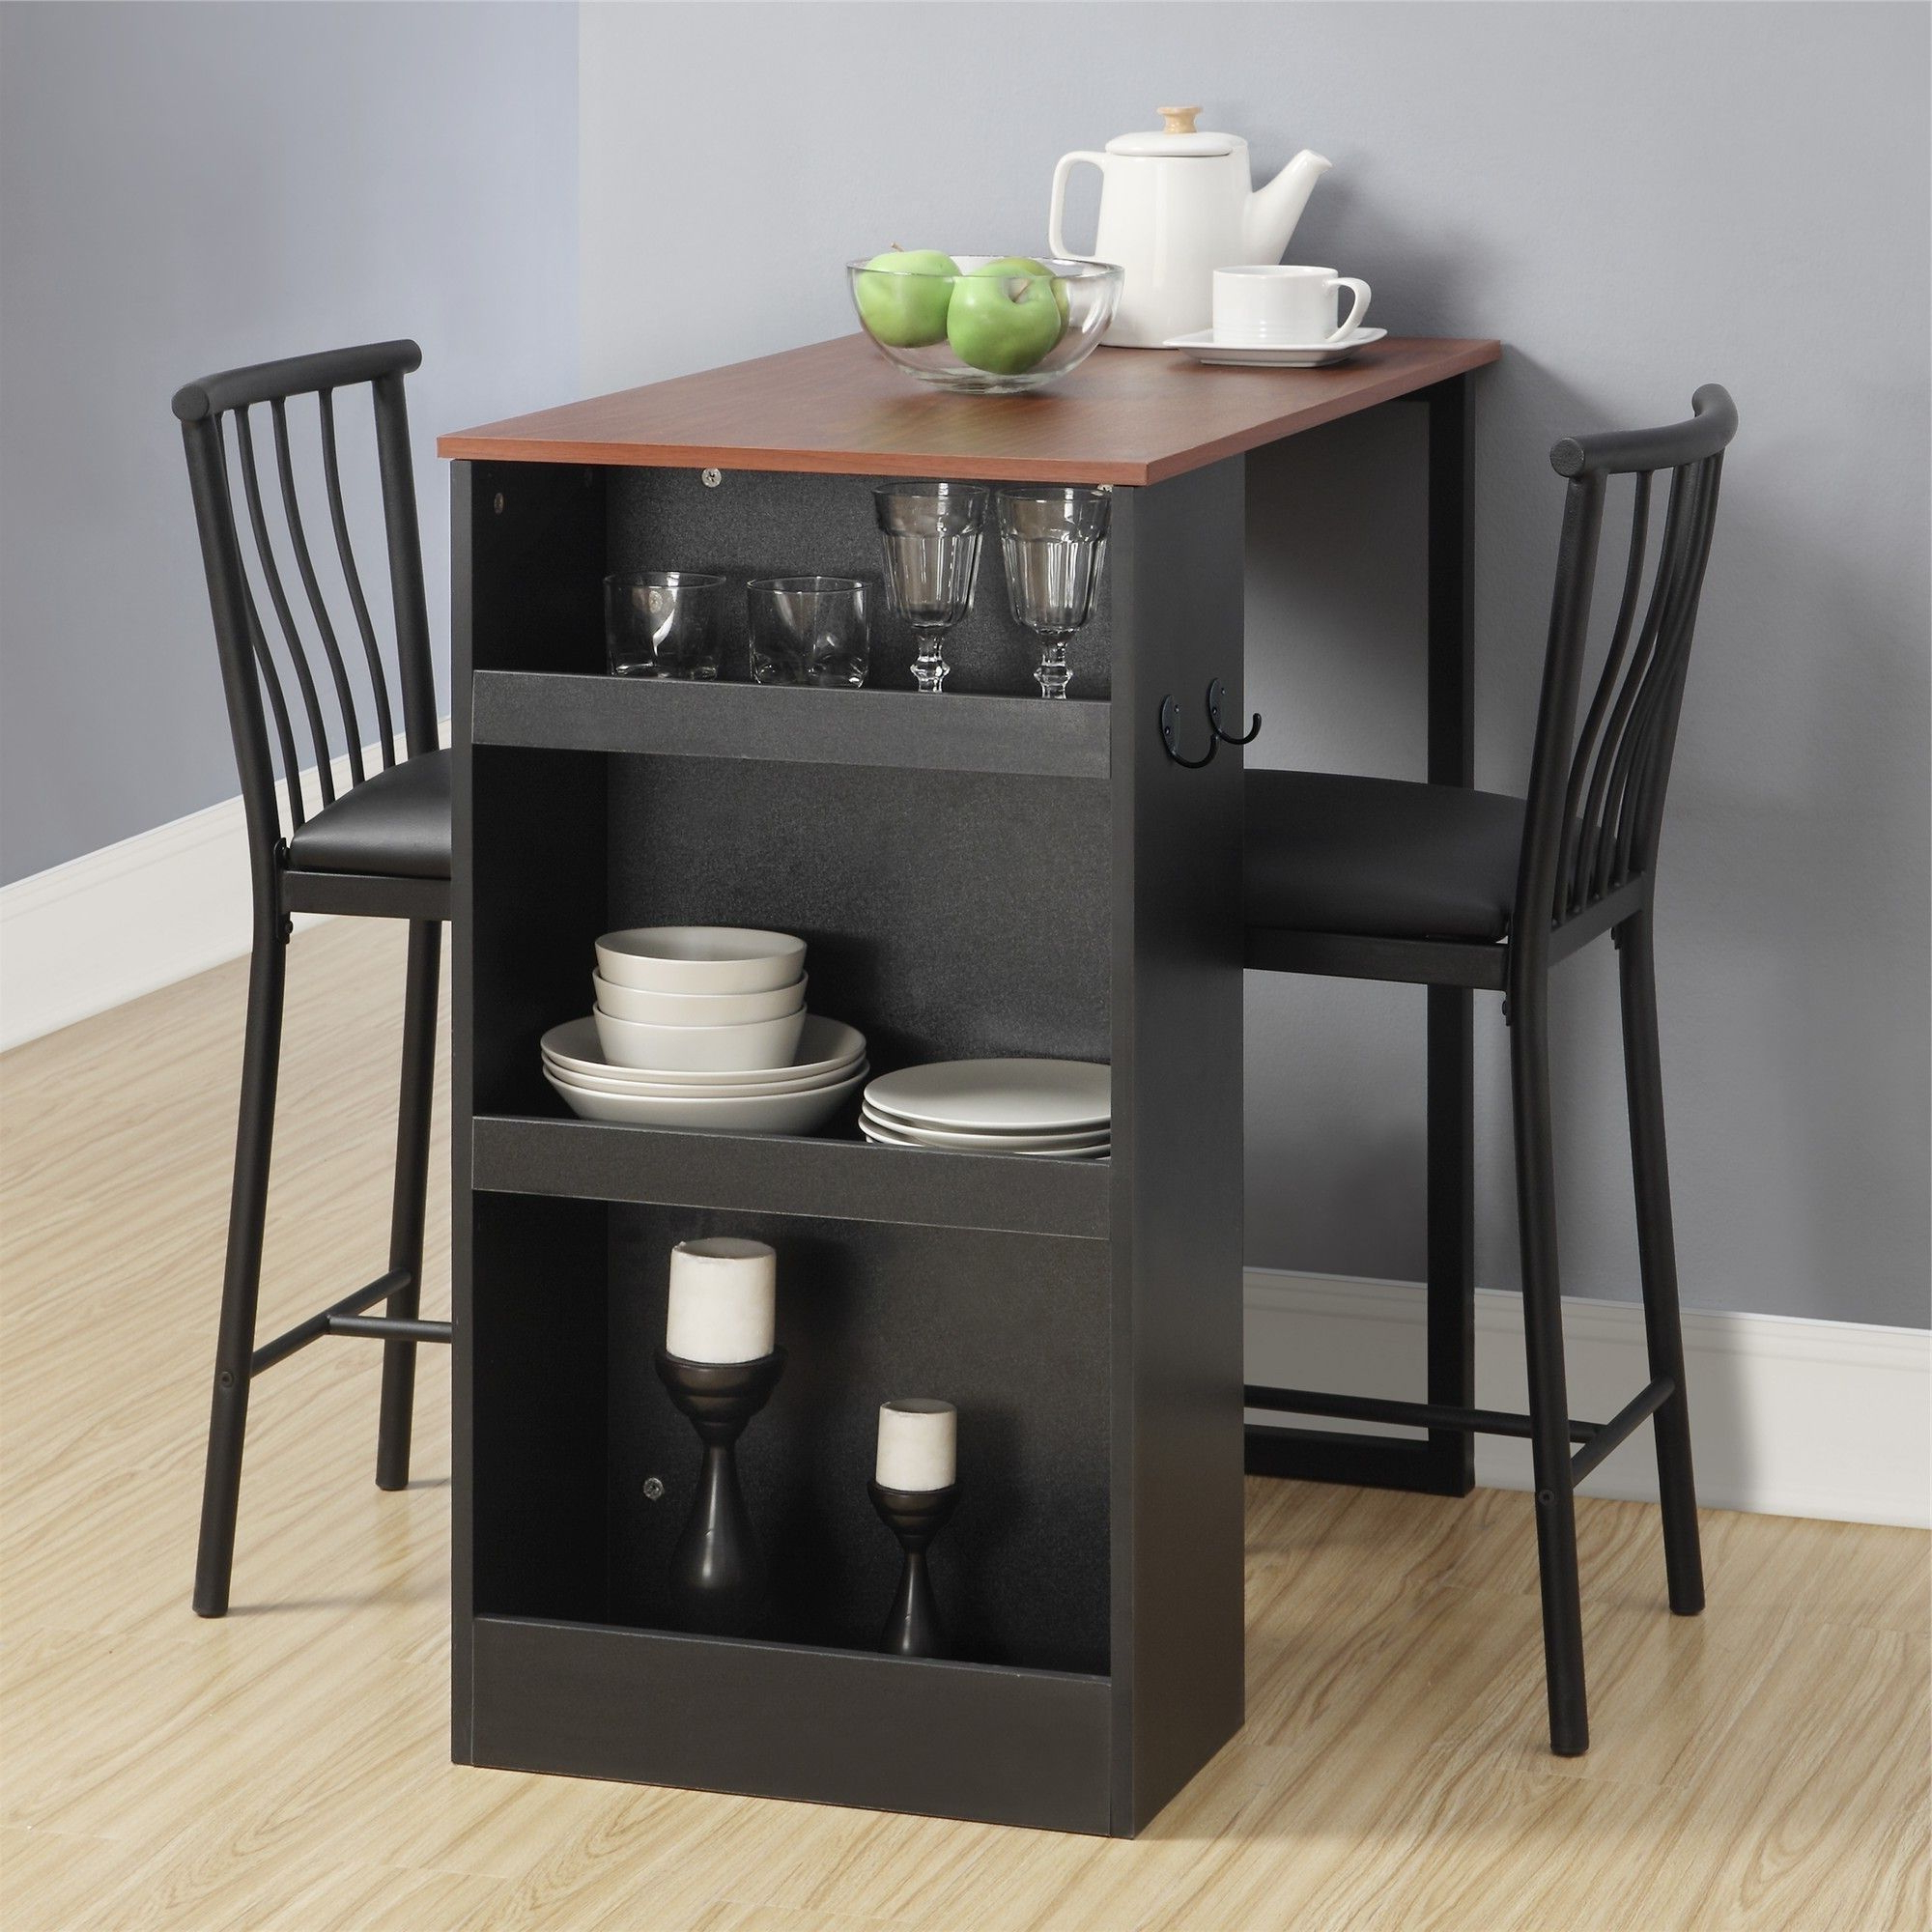 Newest Griffin Reclaimed Wood Bar-Height Tables pertaining to Avenue Greene 3-Pc Counter Height Bar Set (Black)